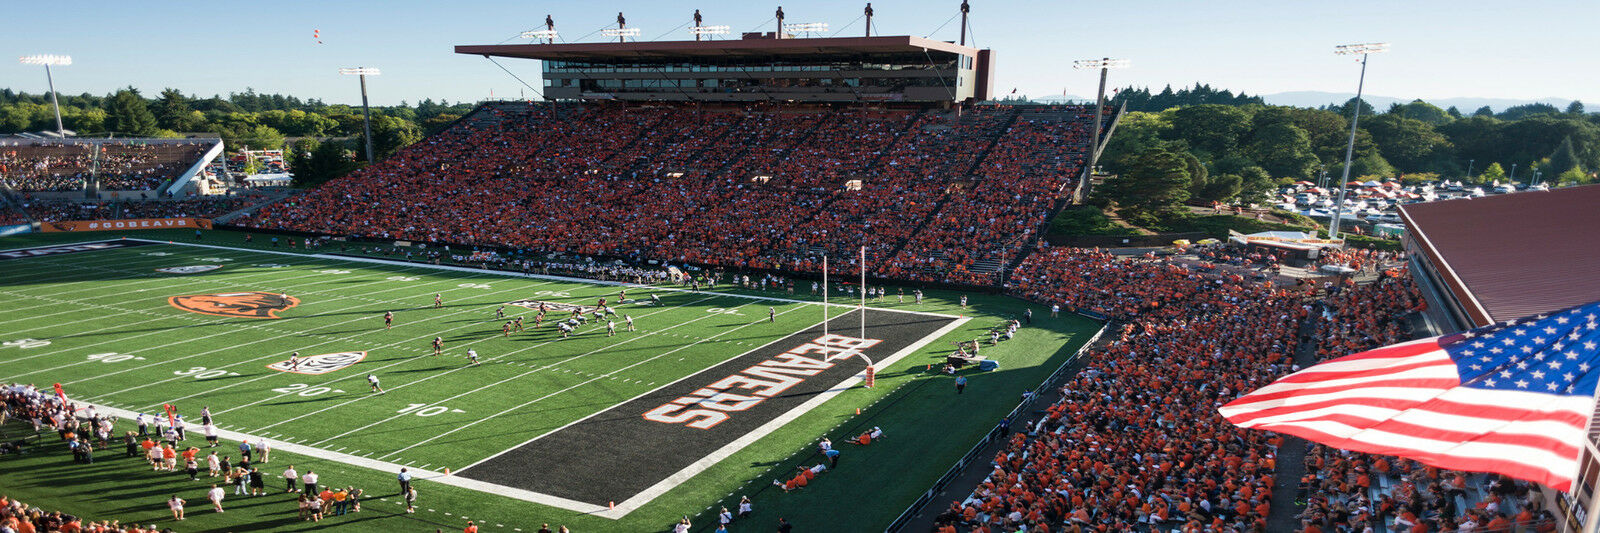 Southern Utah Thunderbirds at Oregon State Beavers Football